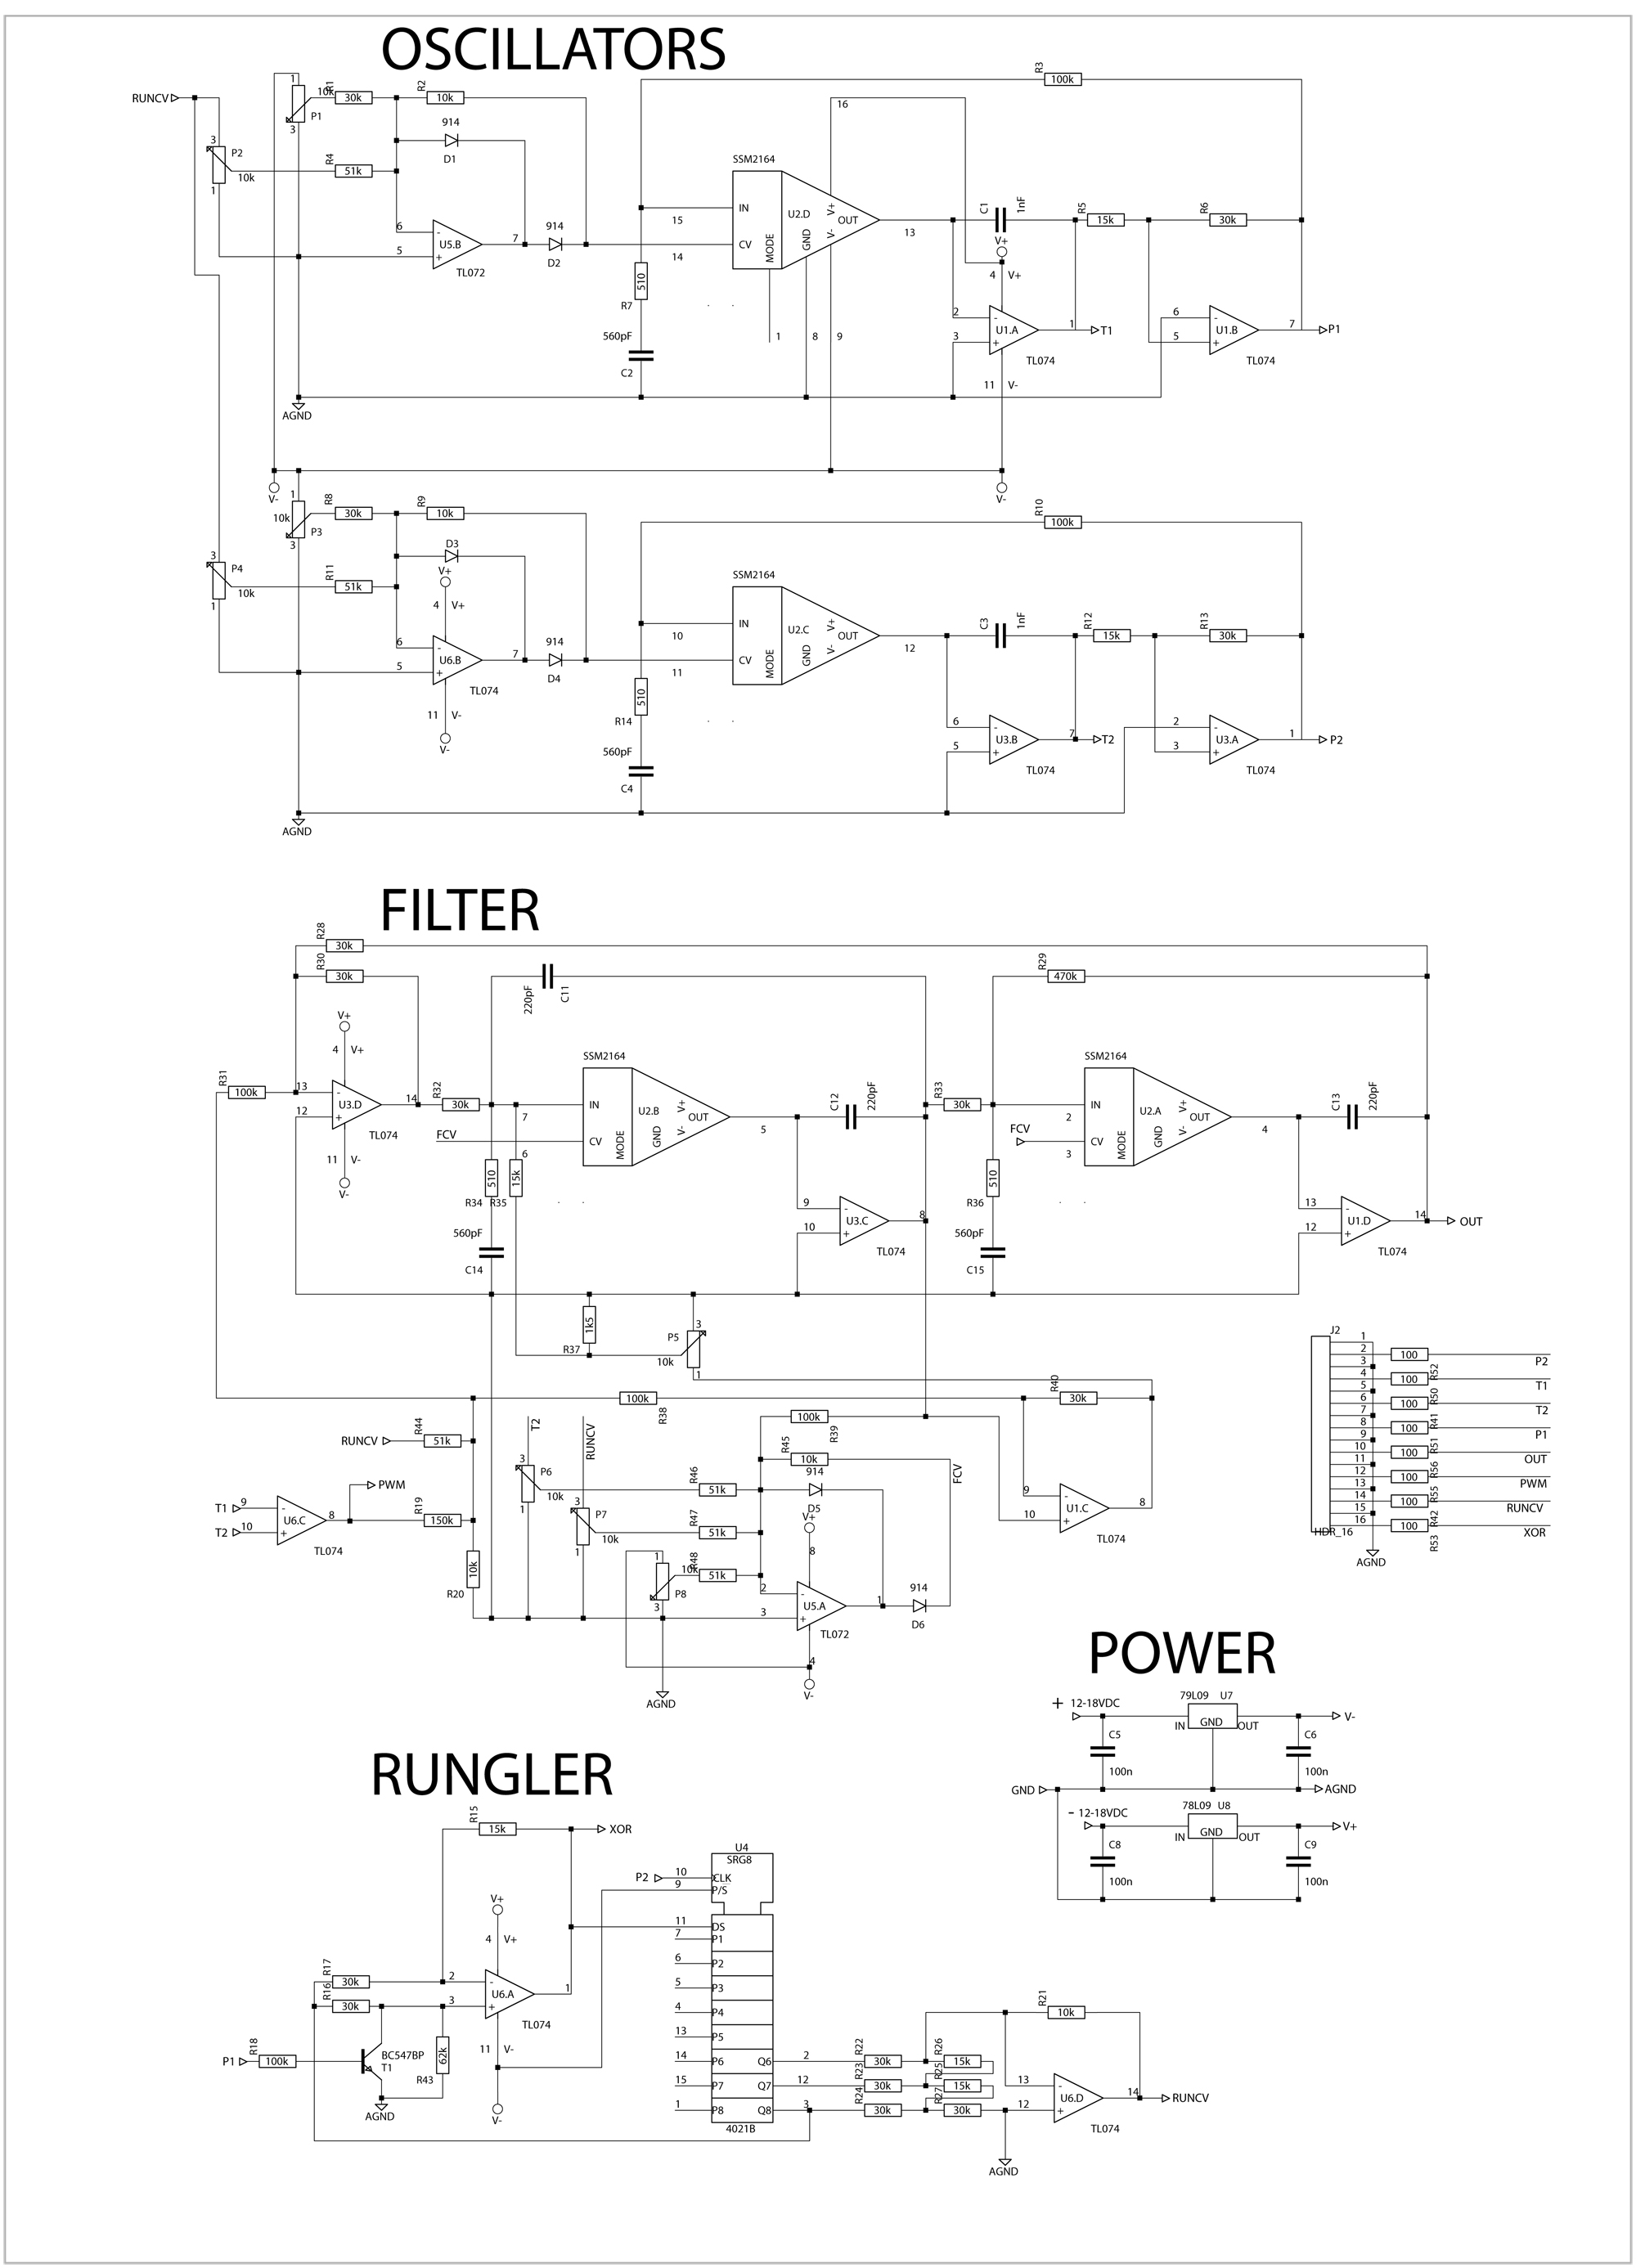 ps3000 wiring diagram for load cell best wiring library Multiple Car Amplifier Wiring Diagram related with ps3000 wiring diagram for load cell